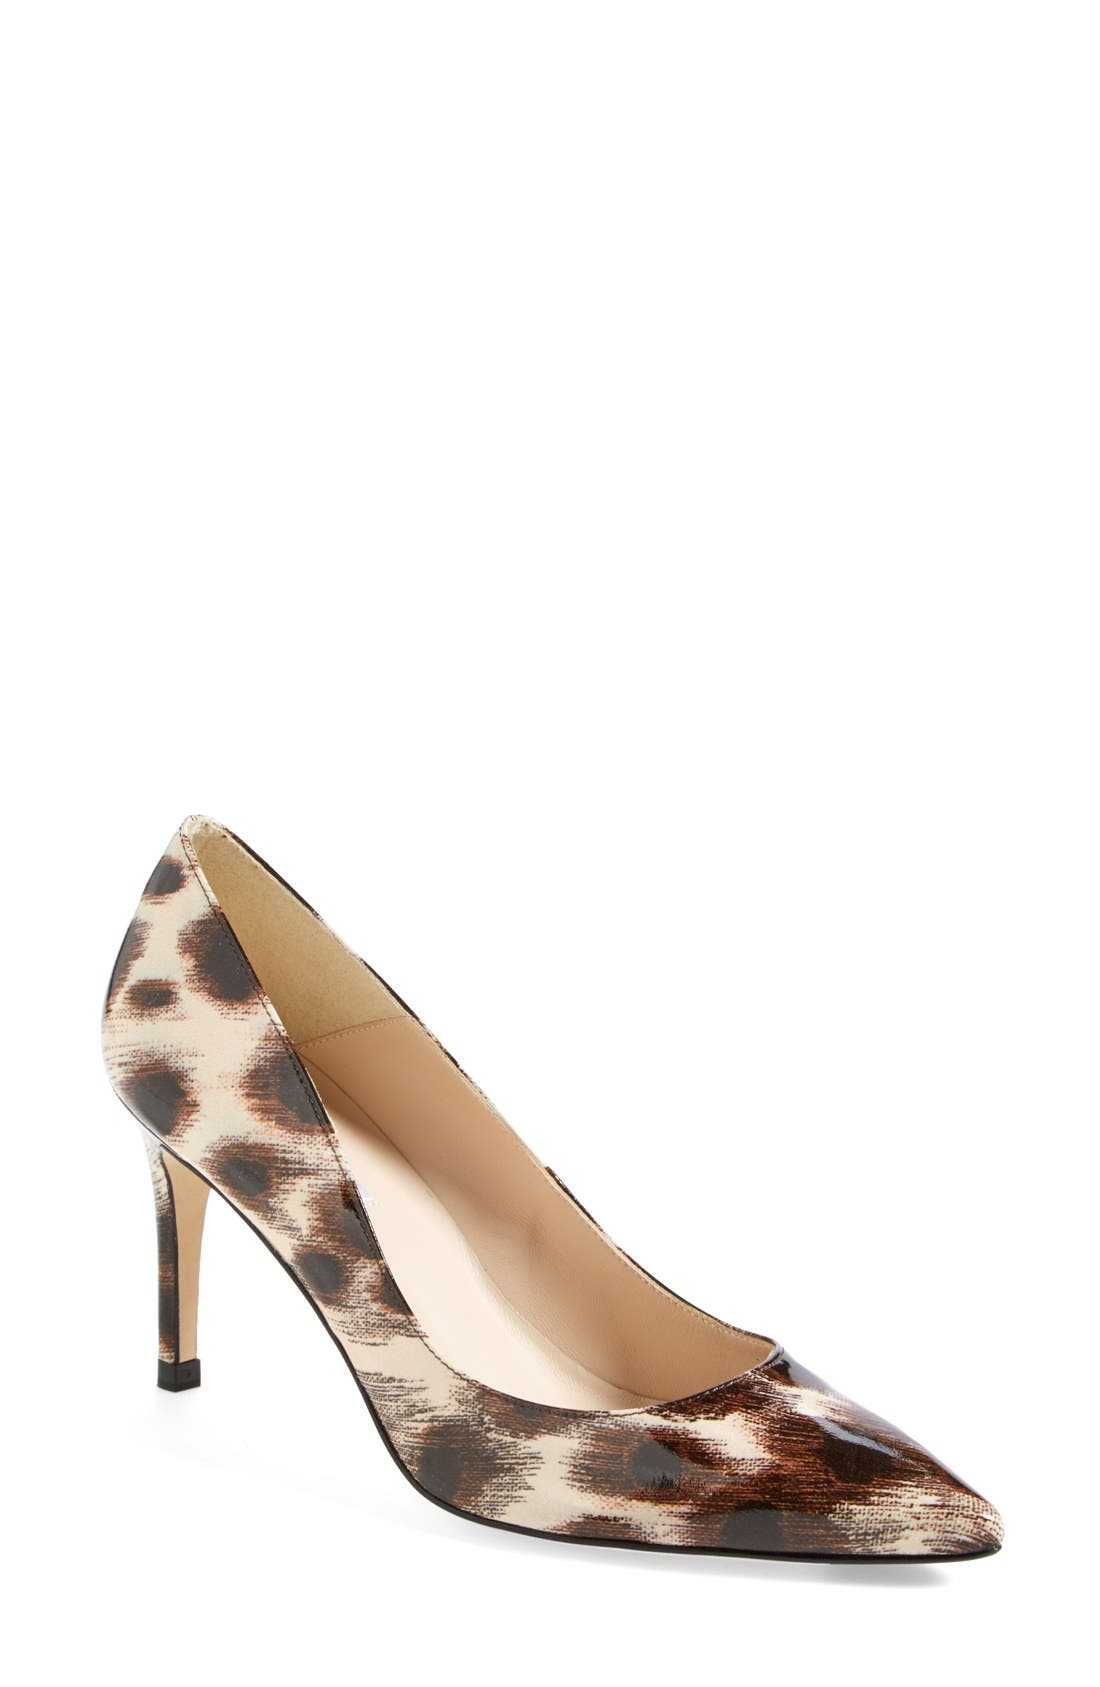 Alternate Image 1 Selected - L.K. Bennett 'Floret' Leopard Print Patent Pointy Toe Pump (Women)